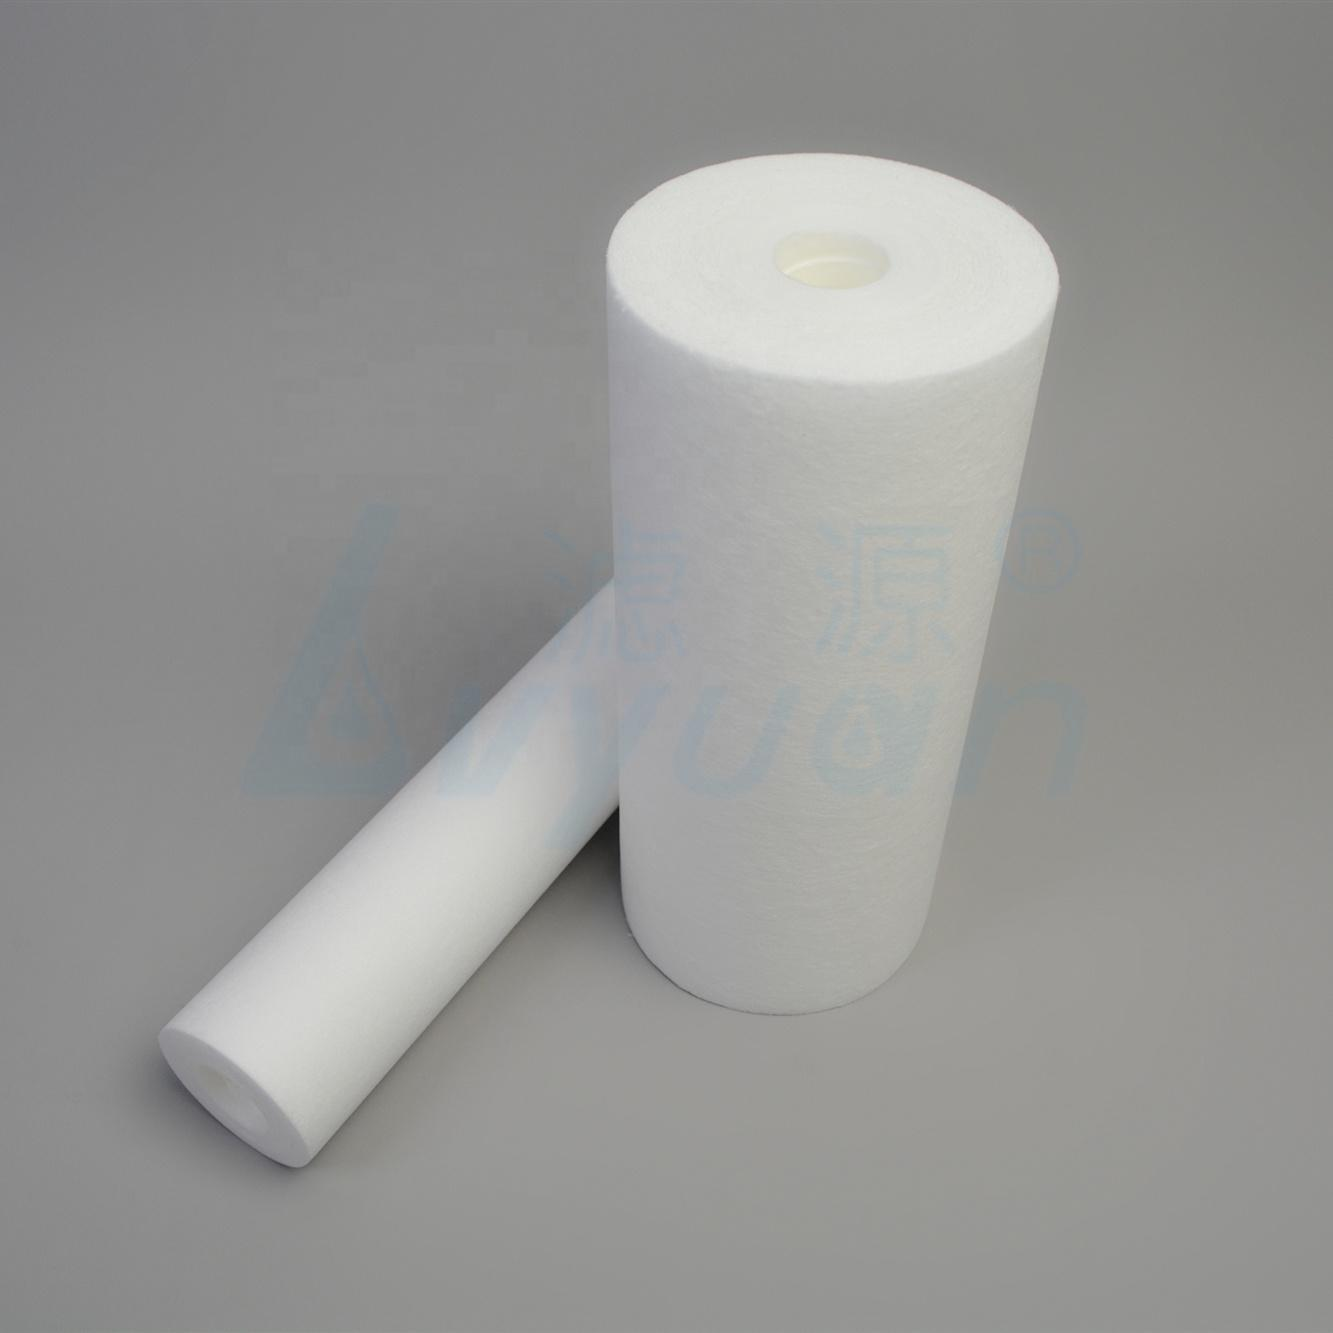 PP Melt Blown Filter Cartridge Customized Size Sediment Water Filter with 1 3 5 10 20 15 50 75 100 Micron